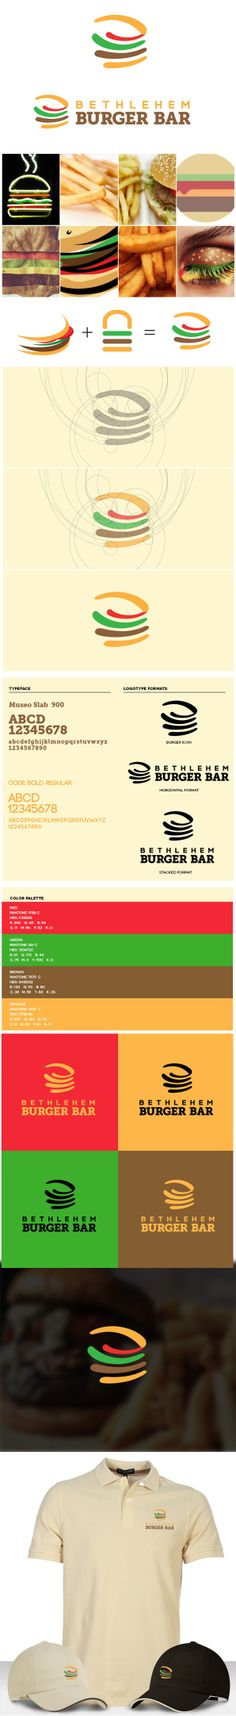 Bethlehem Burger Bar Branding by Ni4design Rob Oliver, via Behance